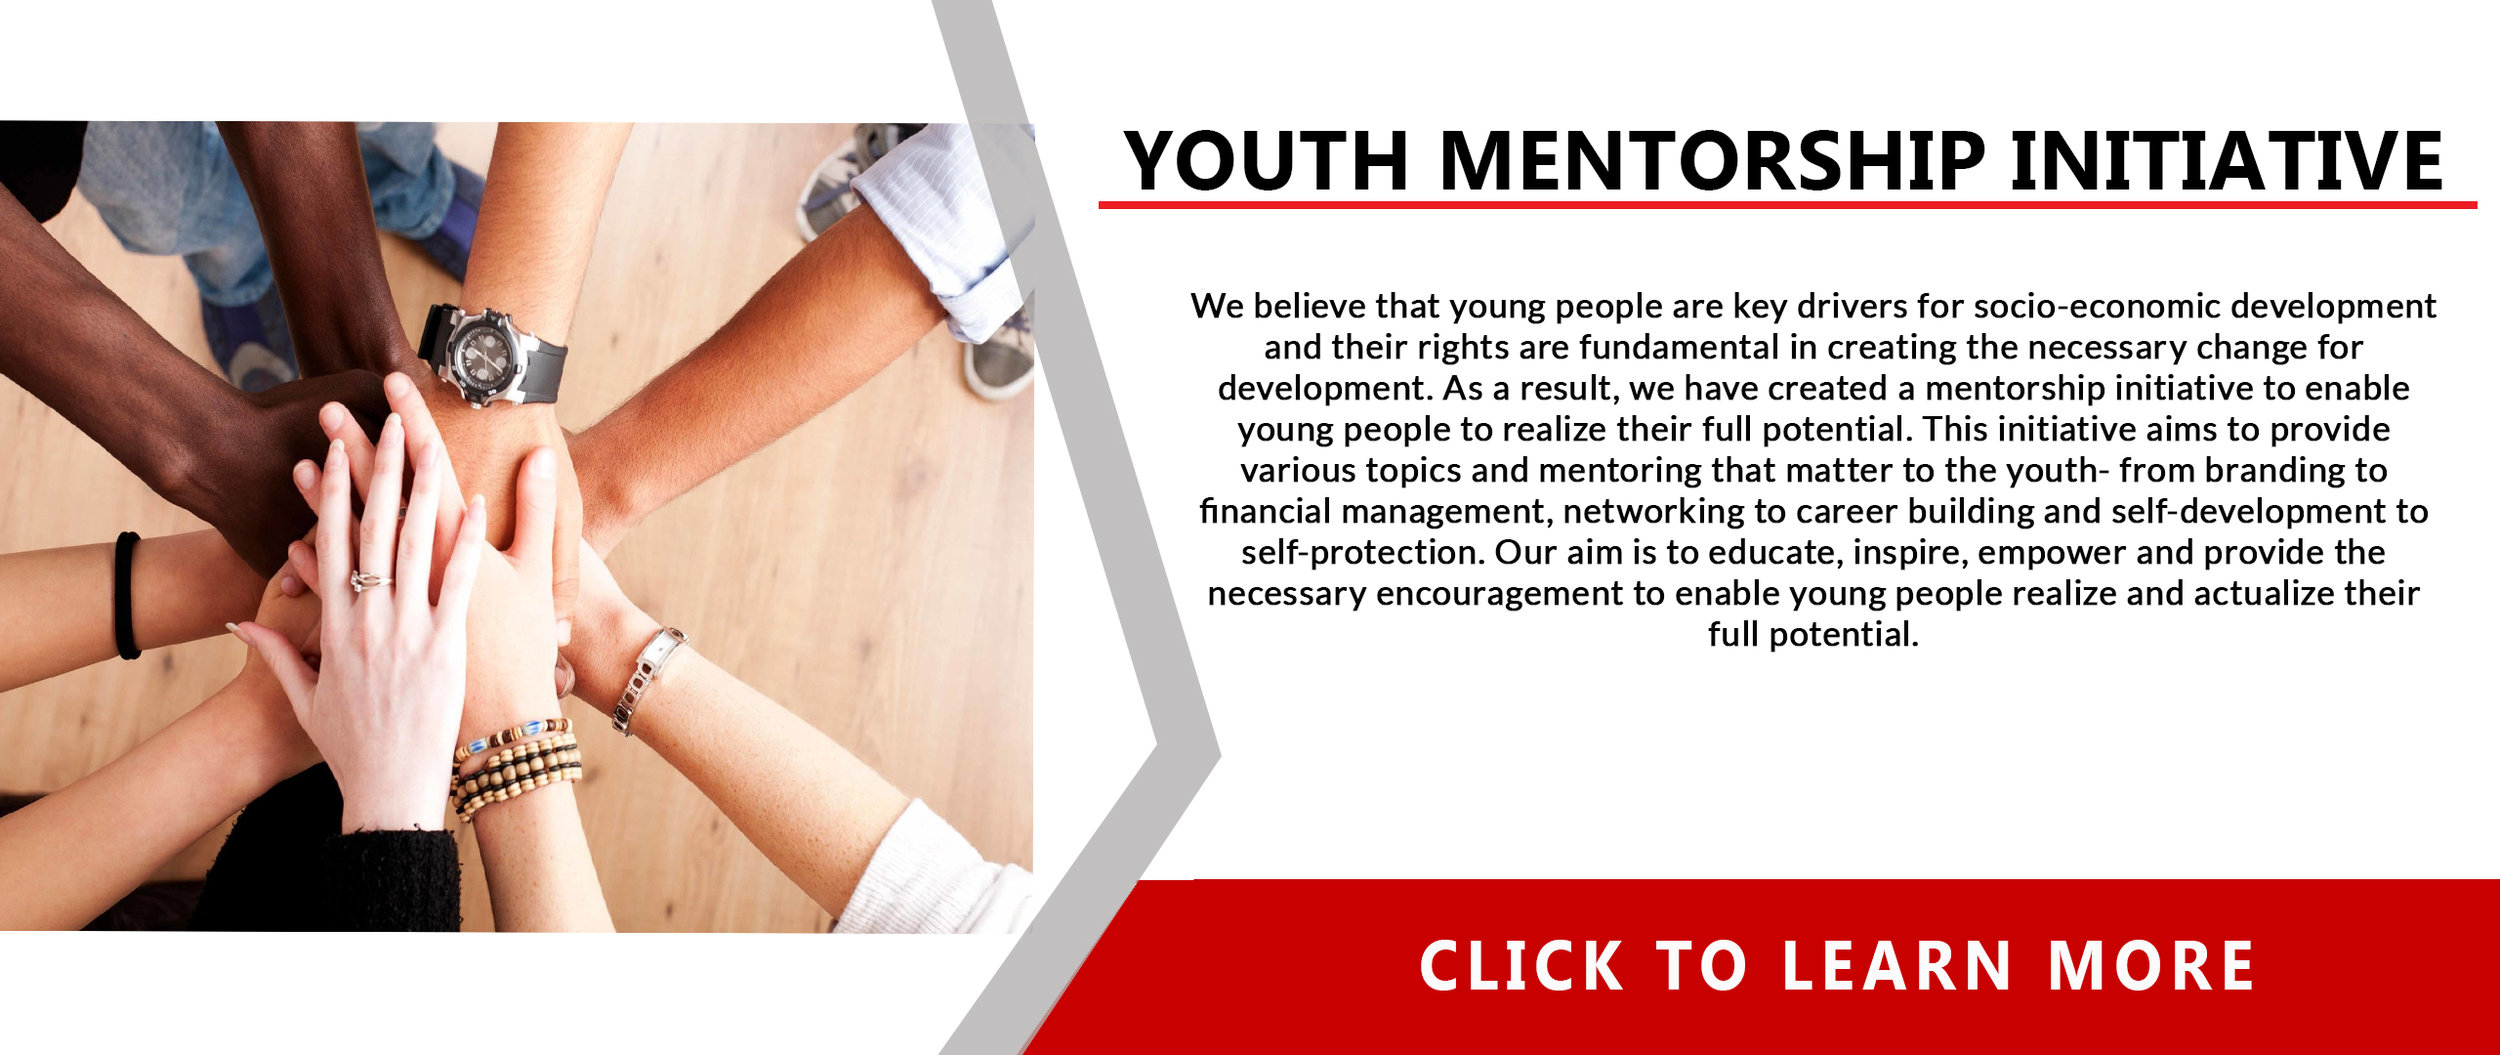 youth mentorship initiative.jpg